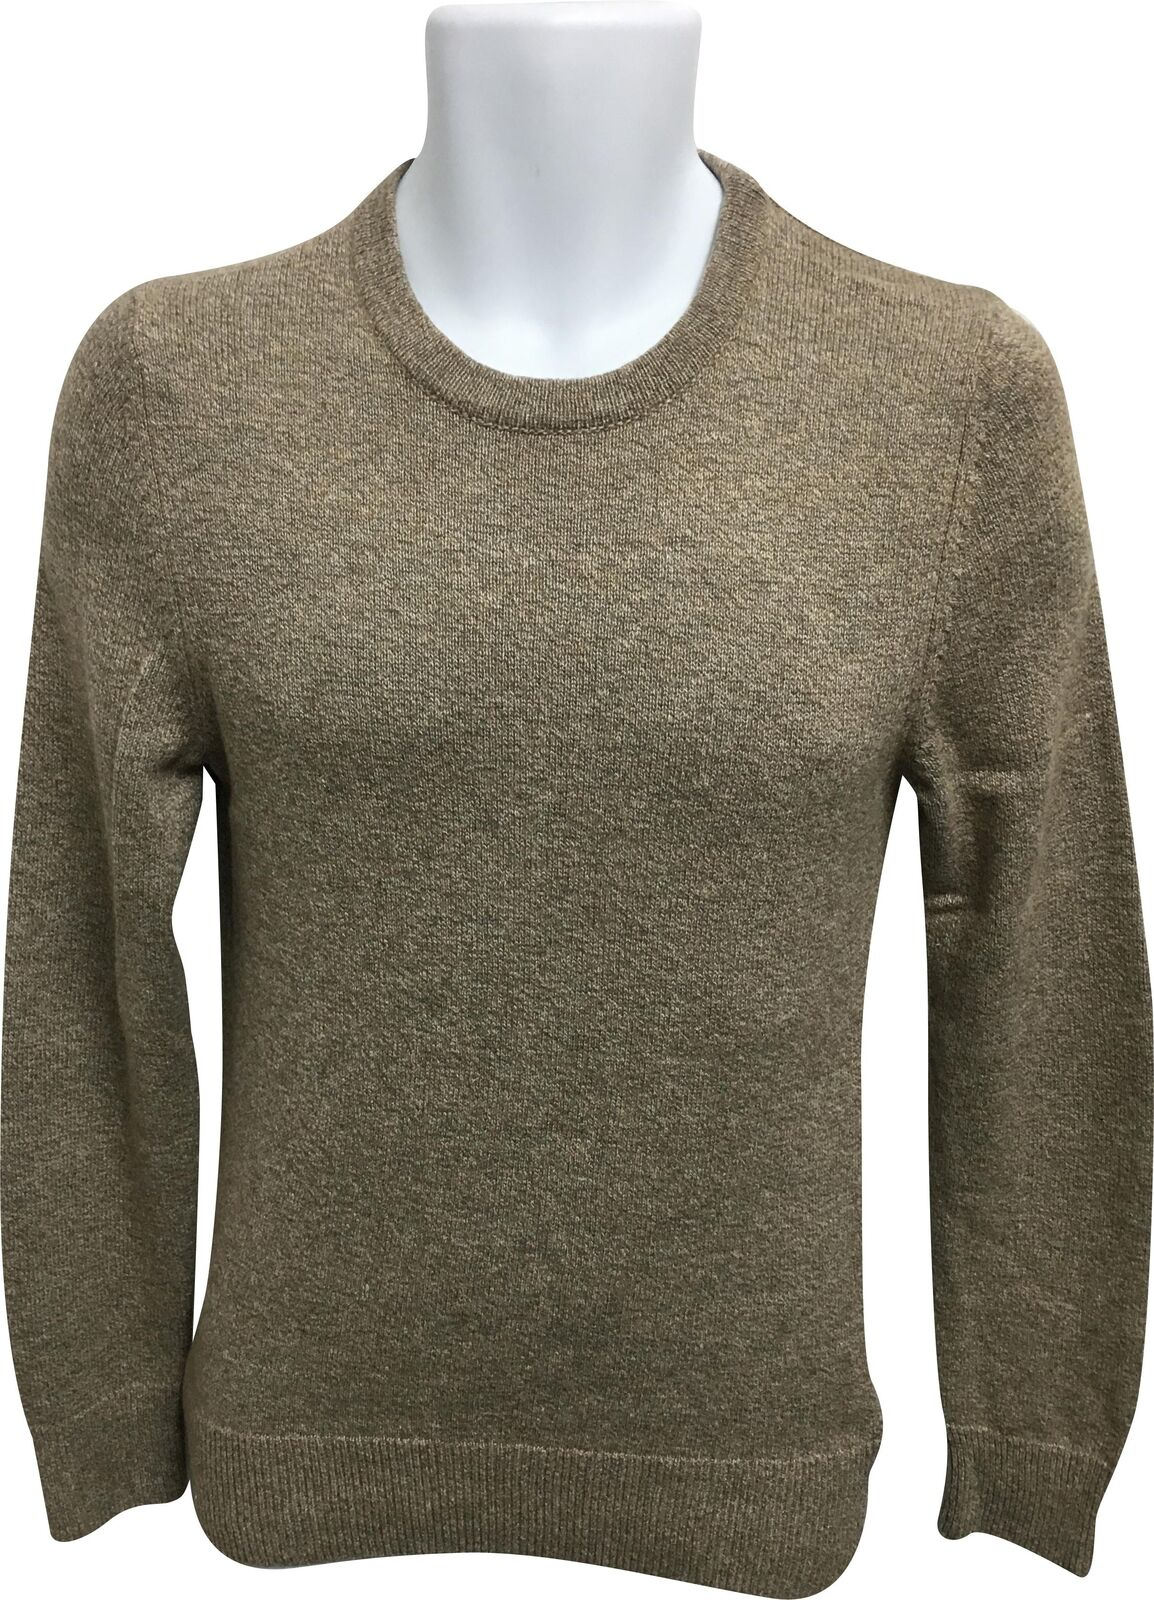 Pre-Owned homme Coude h&m Marron Patch Coude homme Pull Taille EUR X-Small 3af22b